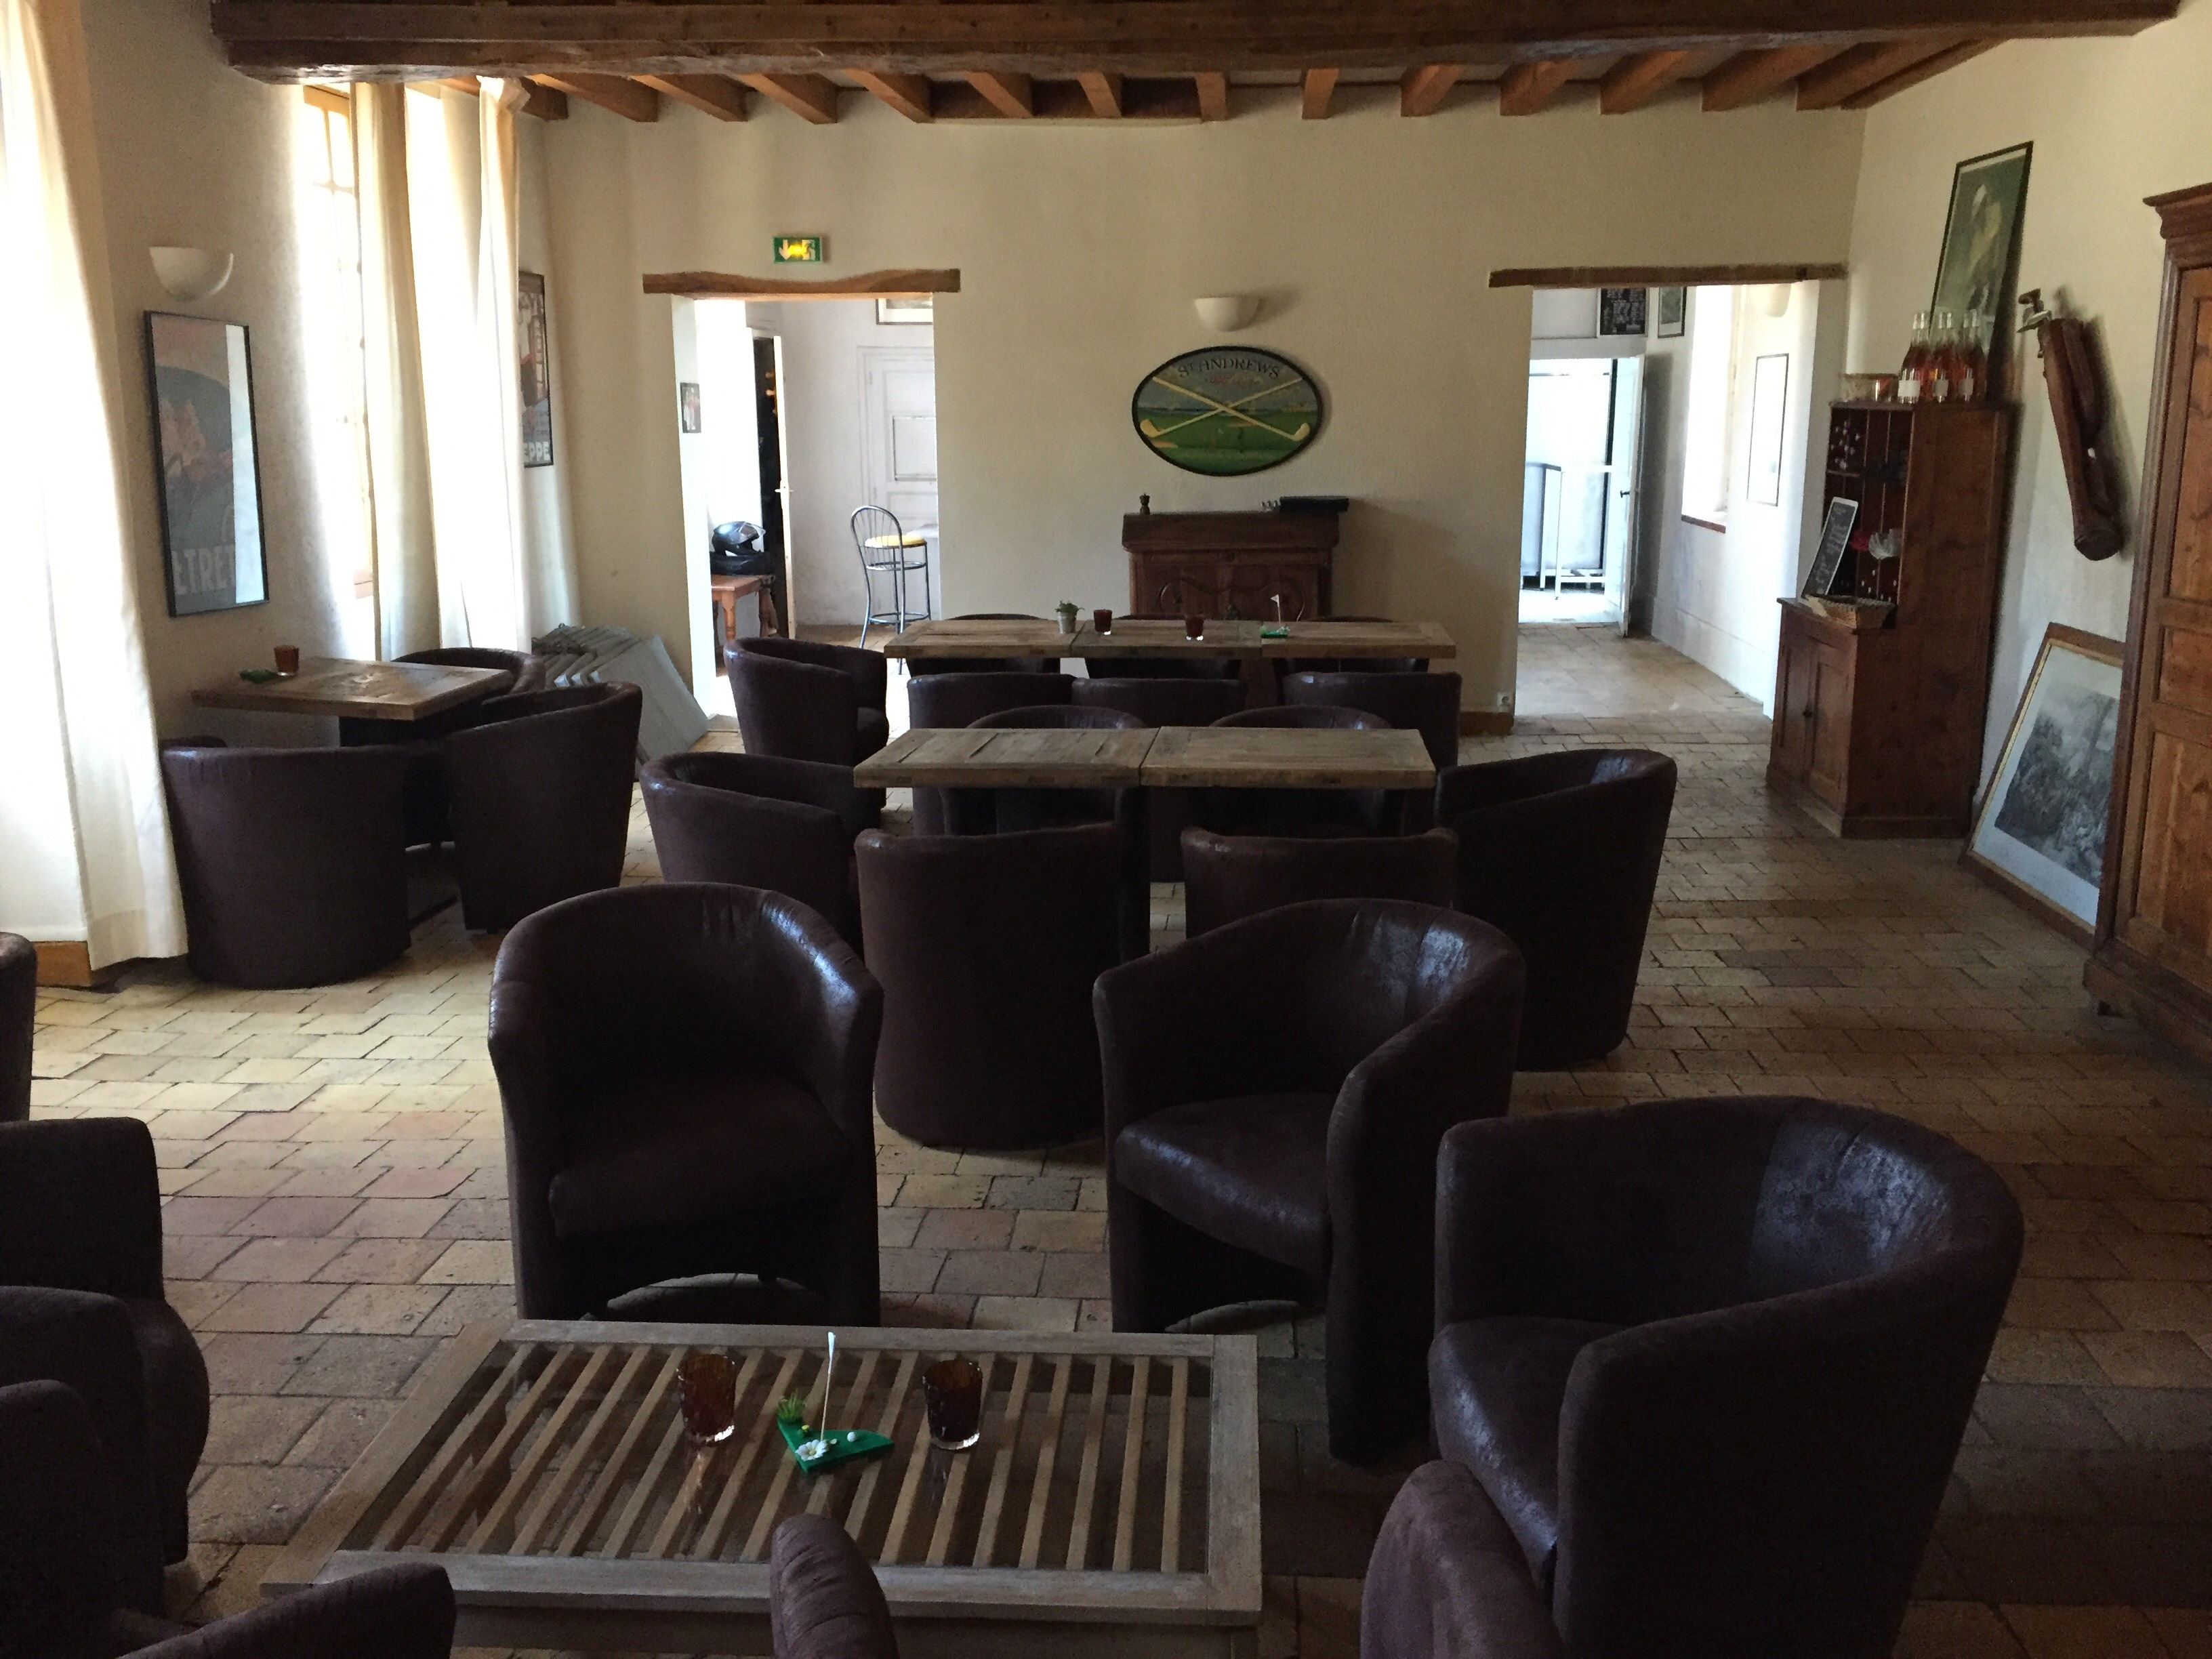 Office de Tourisme du Perche - restaurant golf du perche